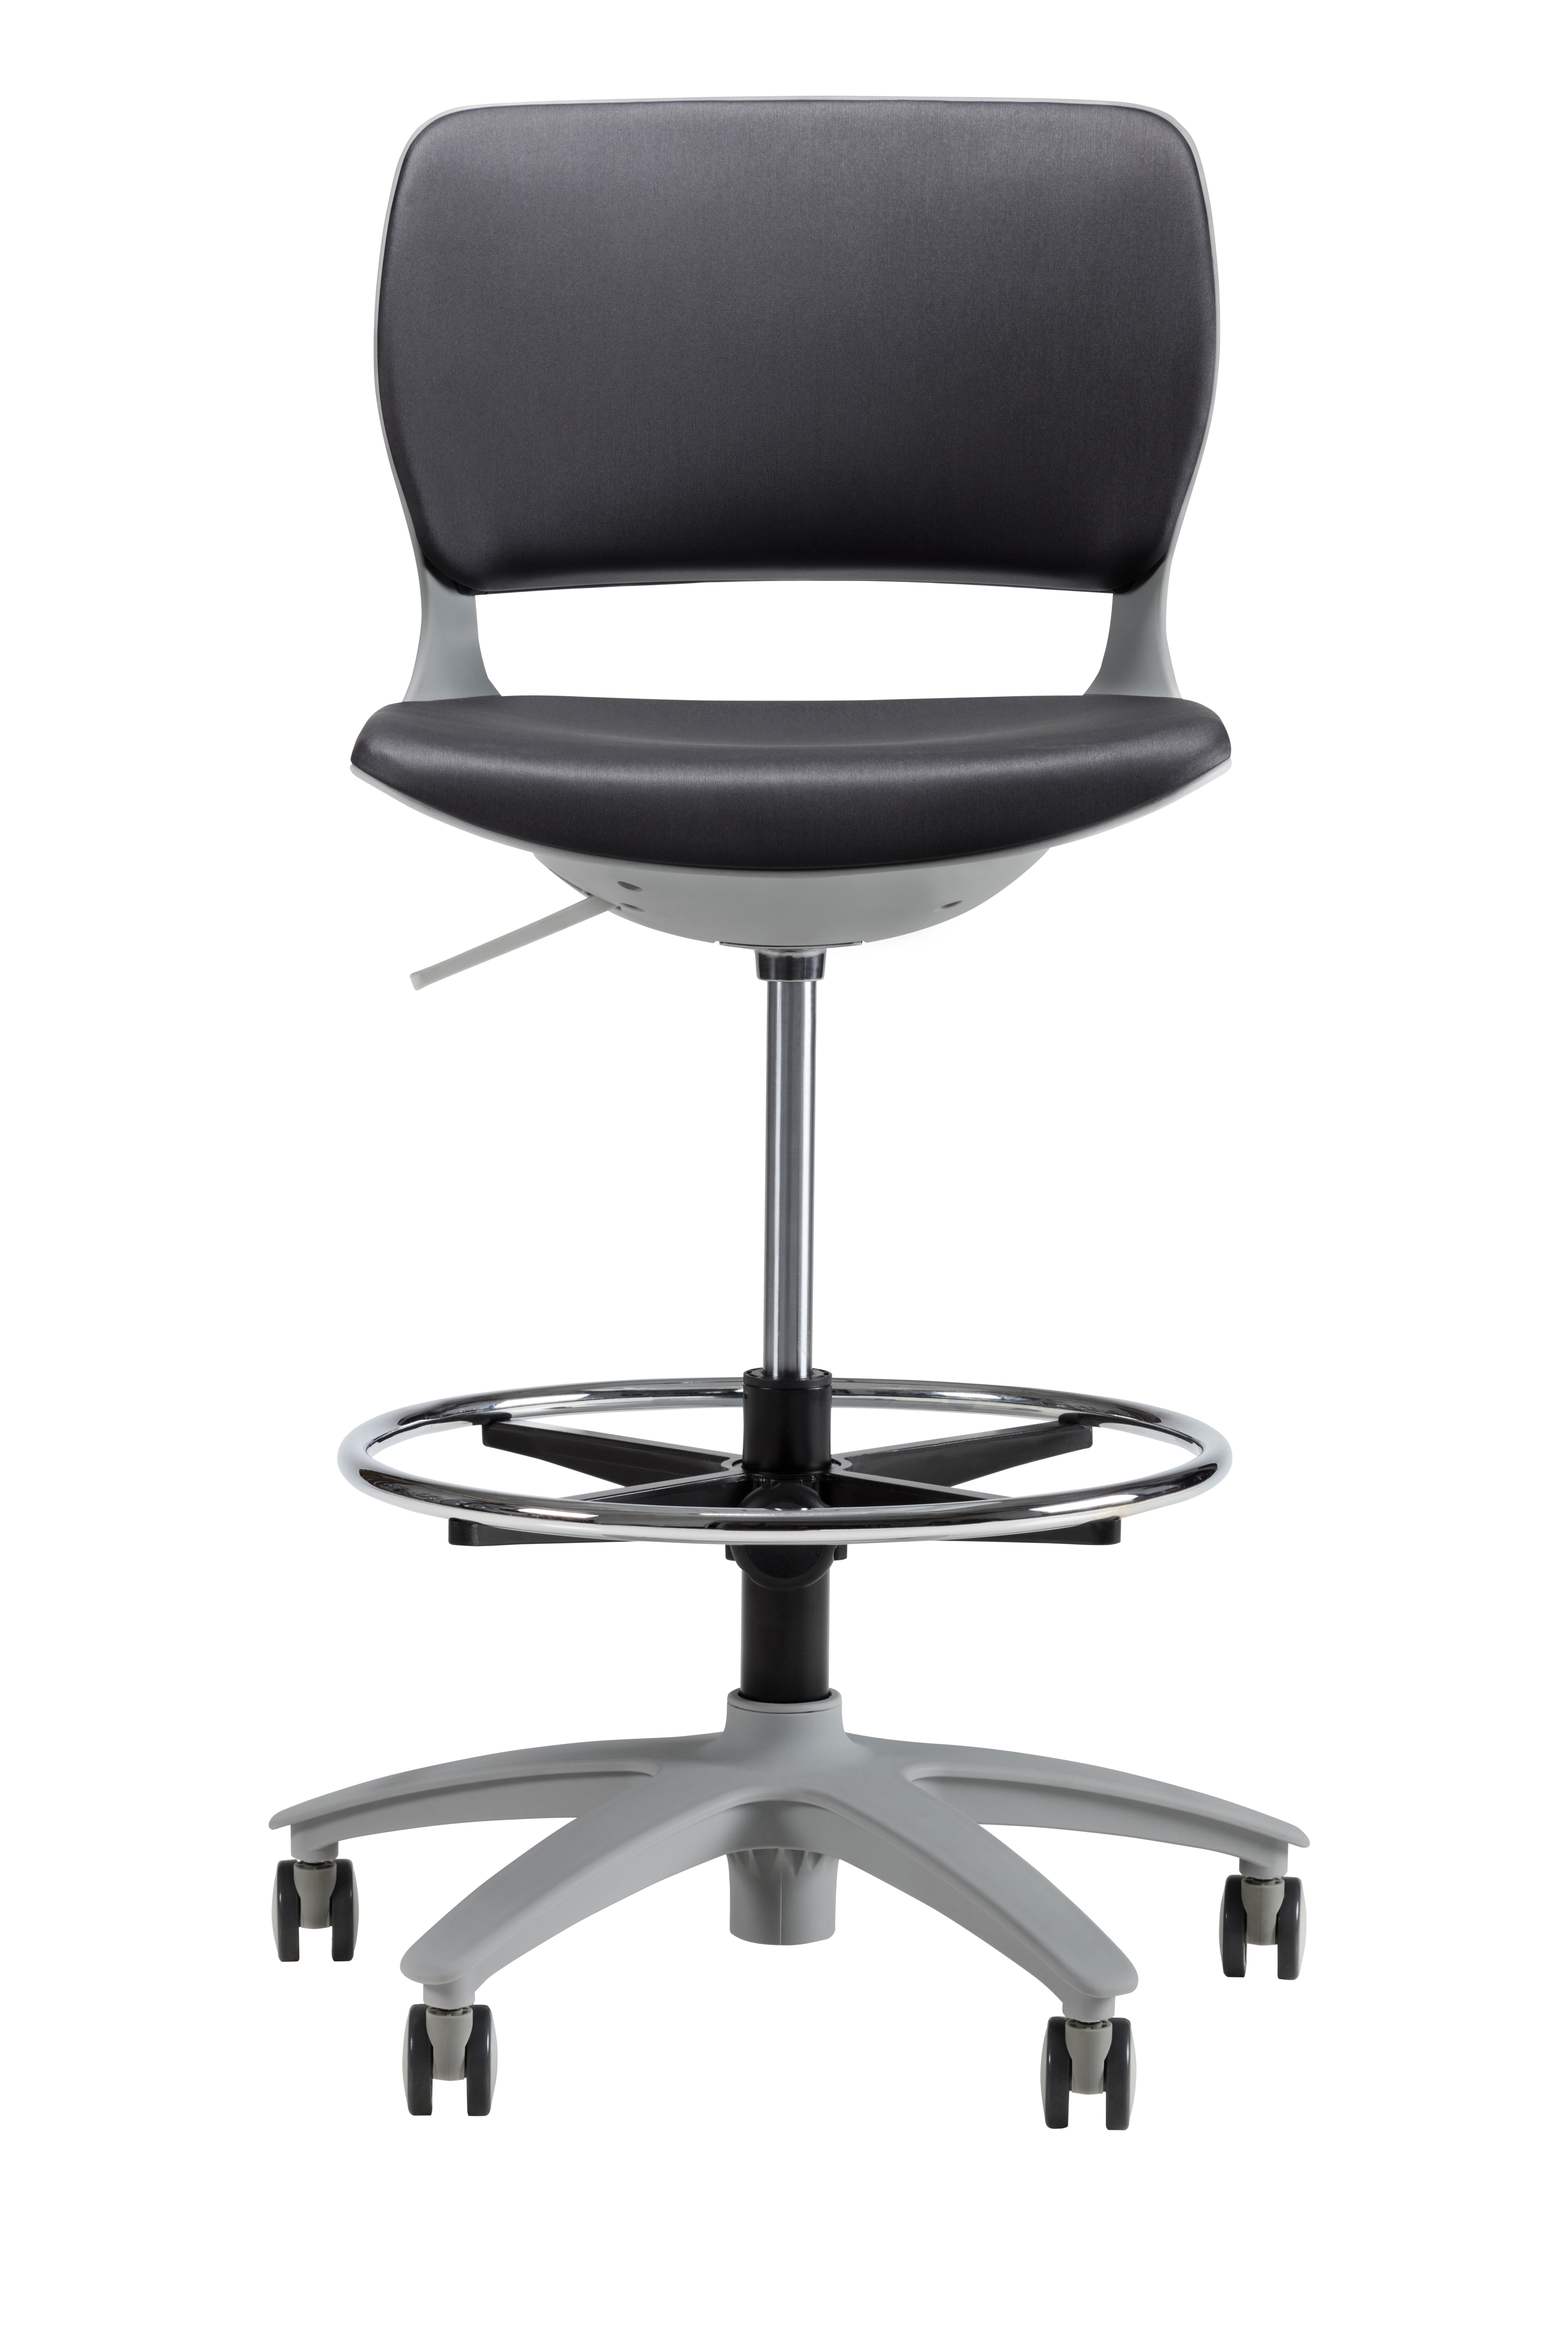 Astral By United Chair Bold Design Natural Curves Adaptable